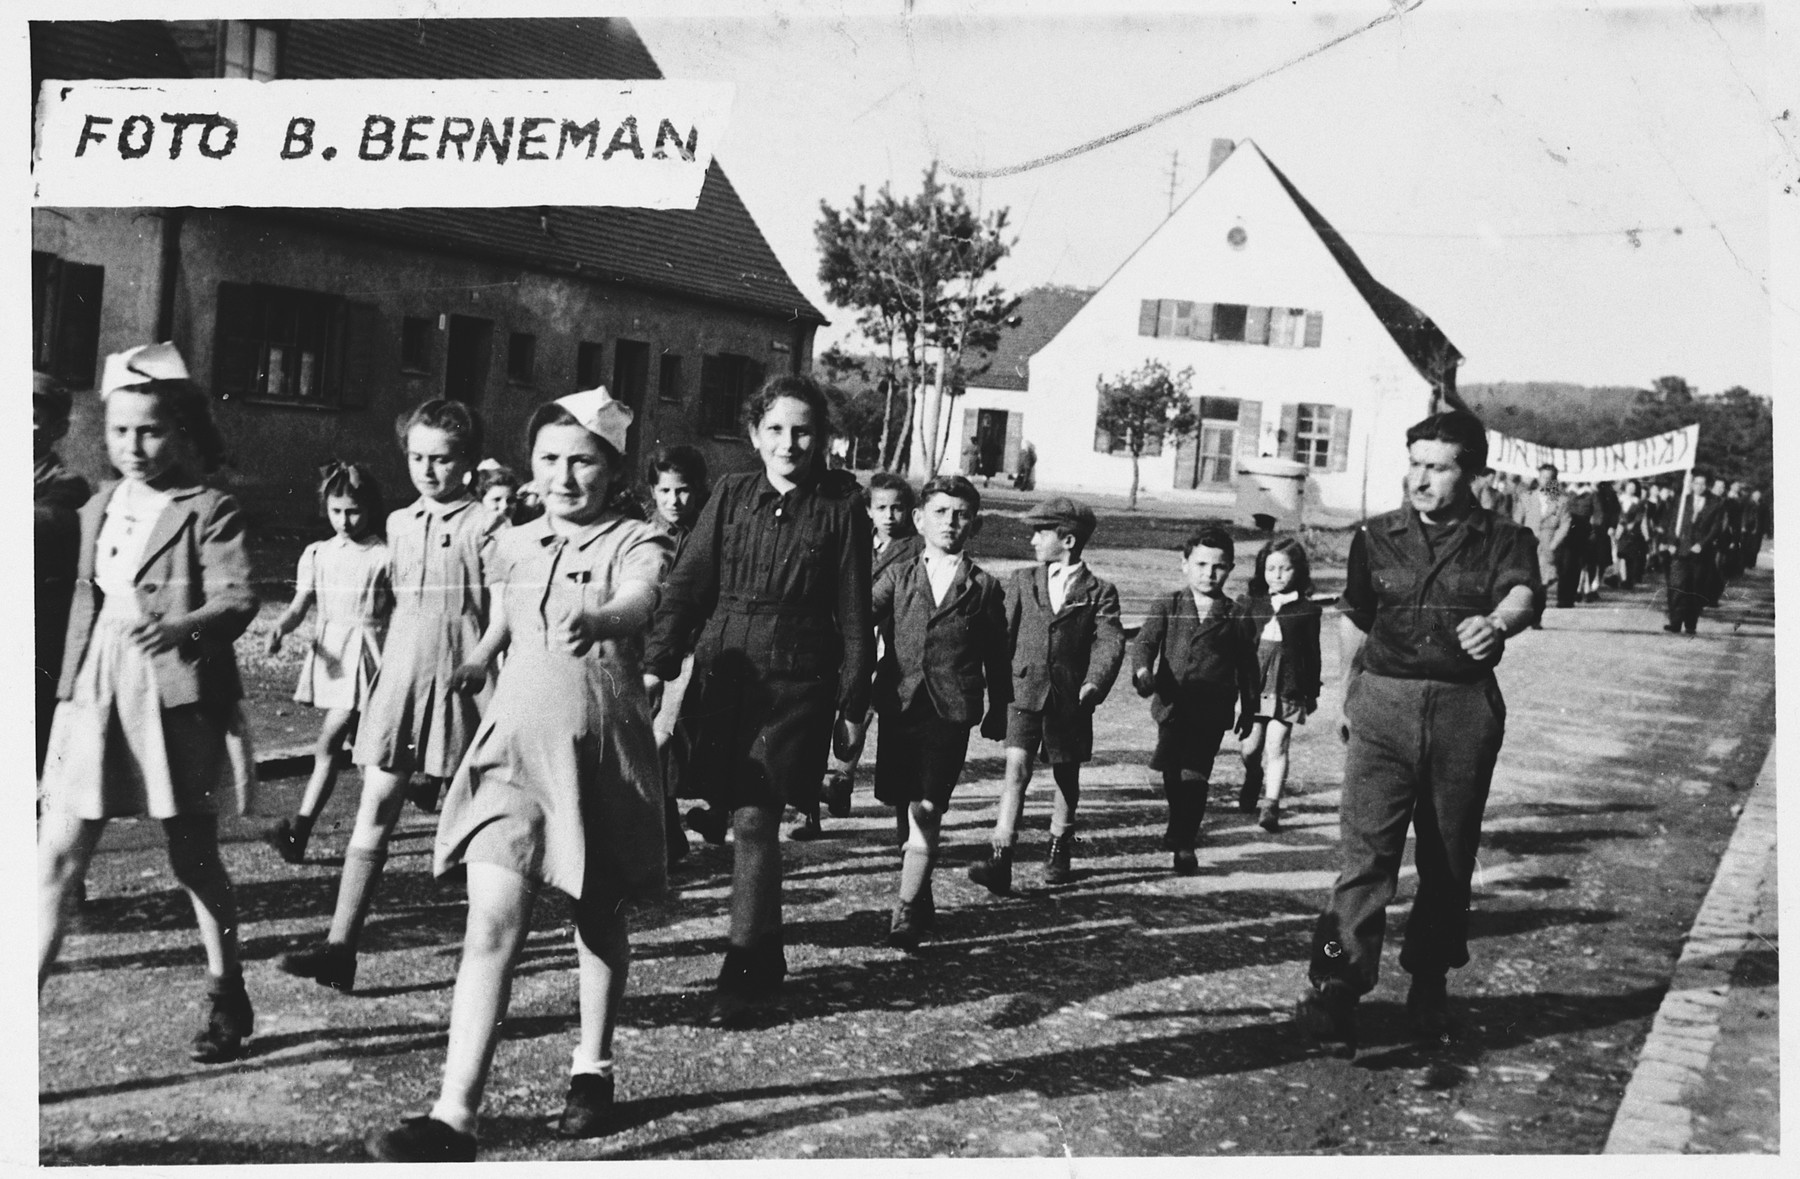 Children in the Foehrenwald displaced persons camp march in a Zionist parade.  Among those pictured is Sonia Dzienciolski.